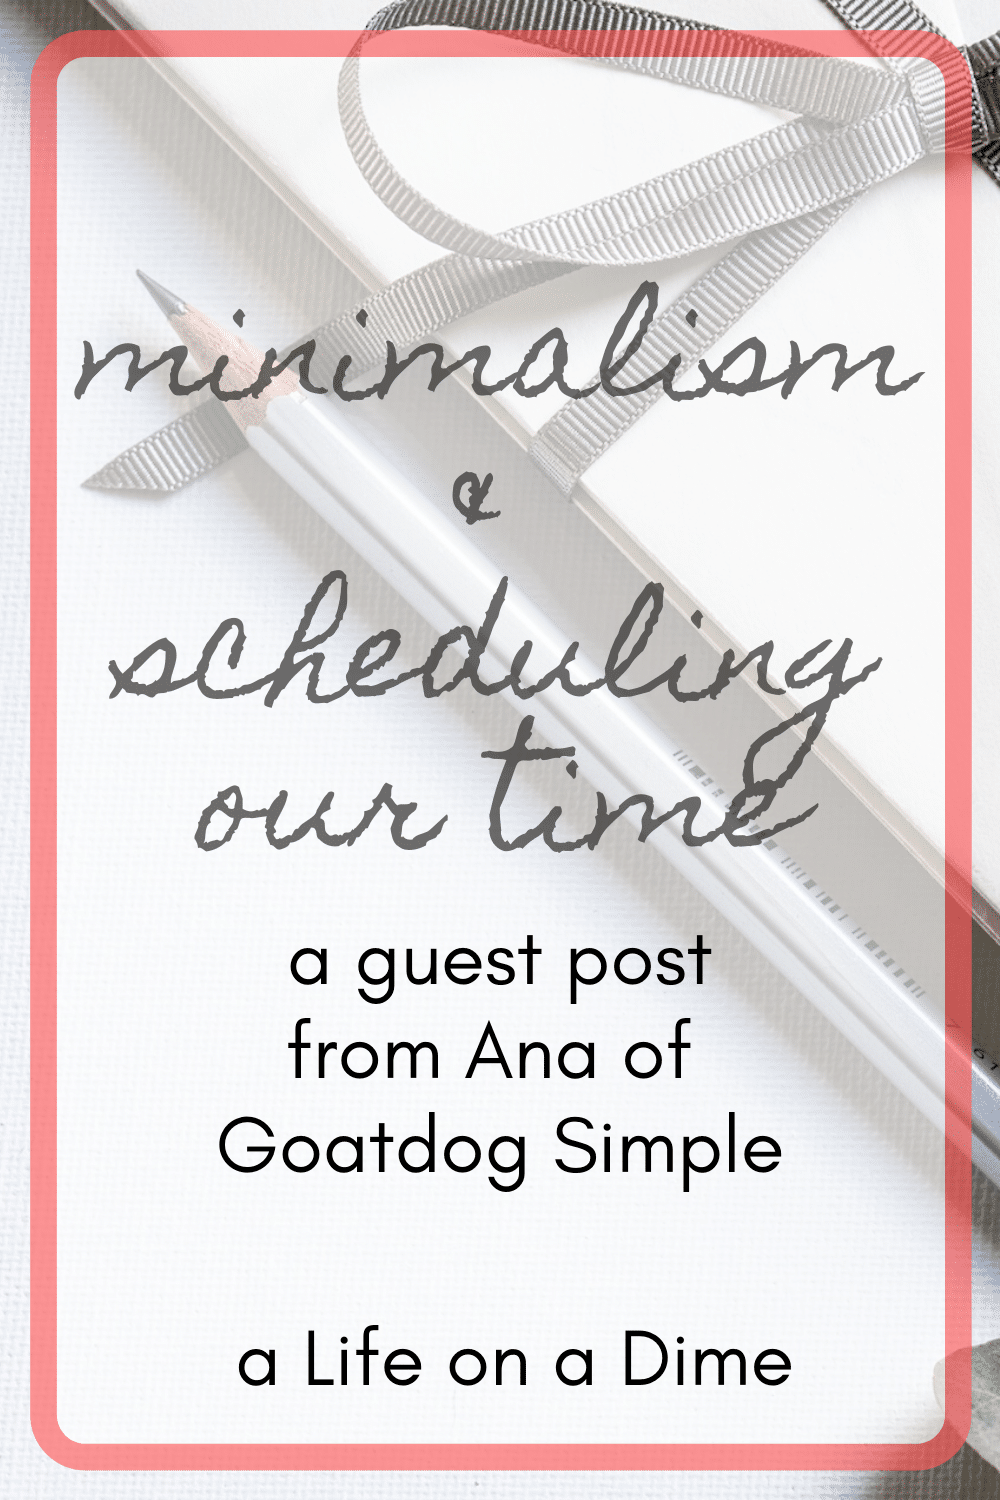 minimalism and scheduling our time